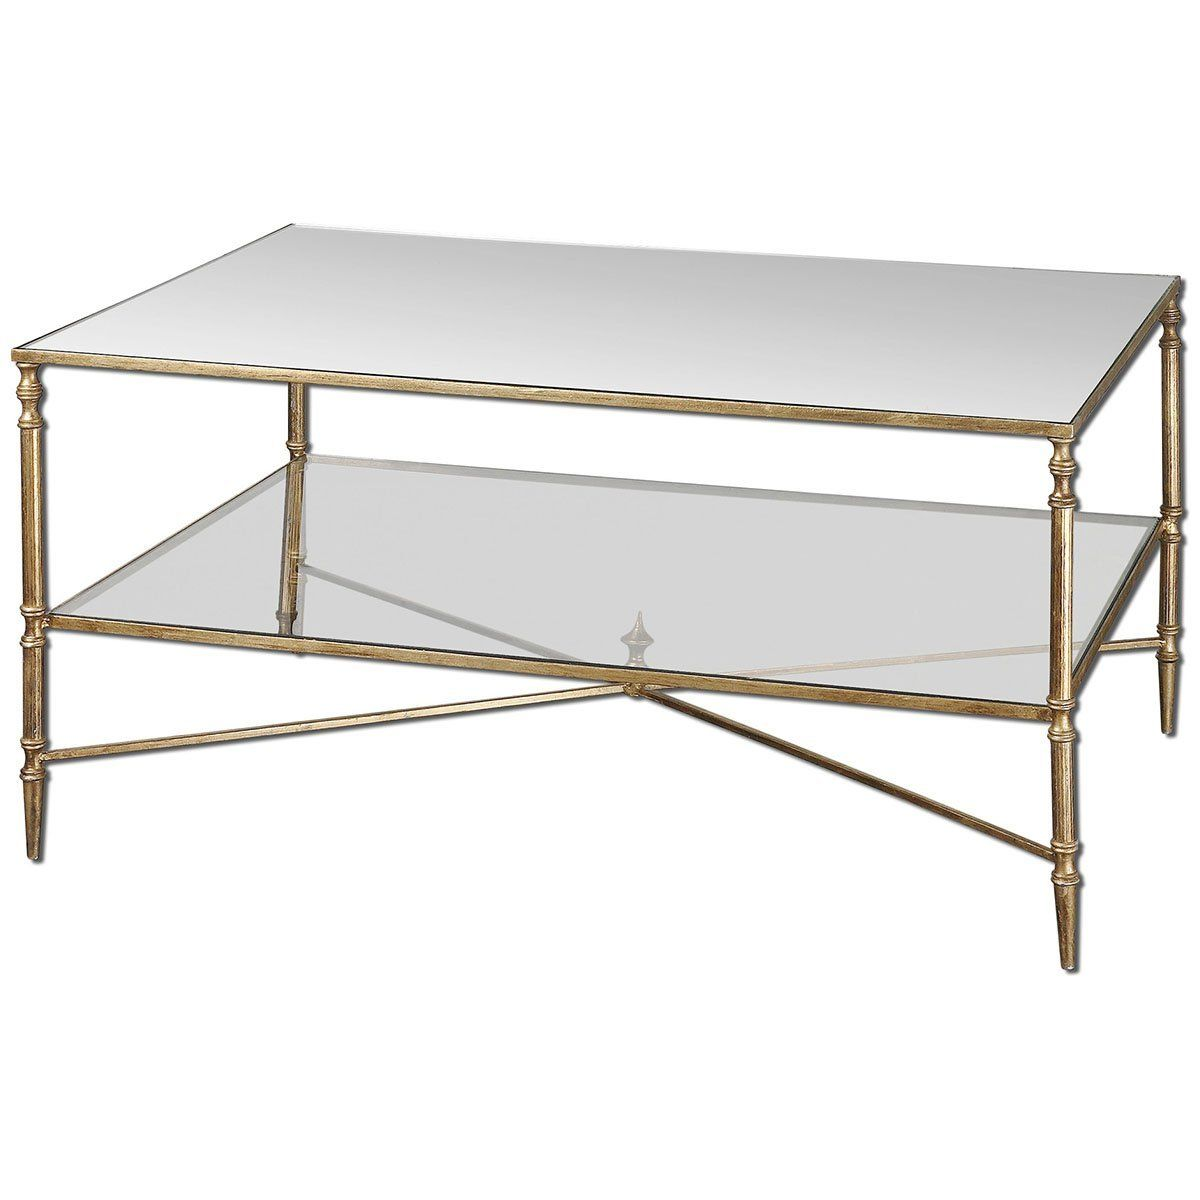 Robot Check Gold Coffee Table Coffee Table Mirrored Coffee Tables [ 1200 x 1200 Pixel ]